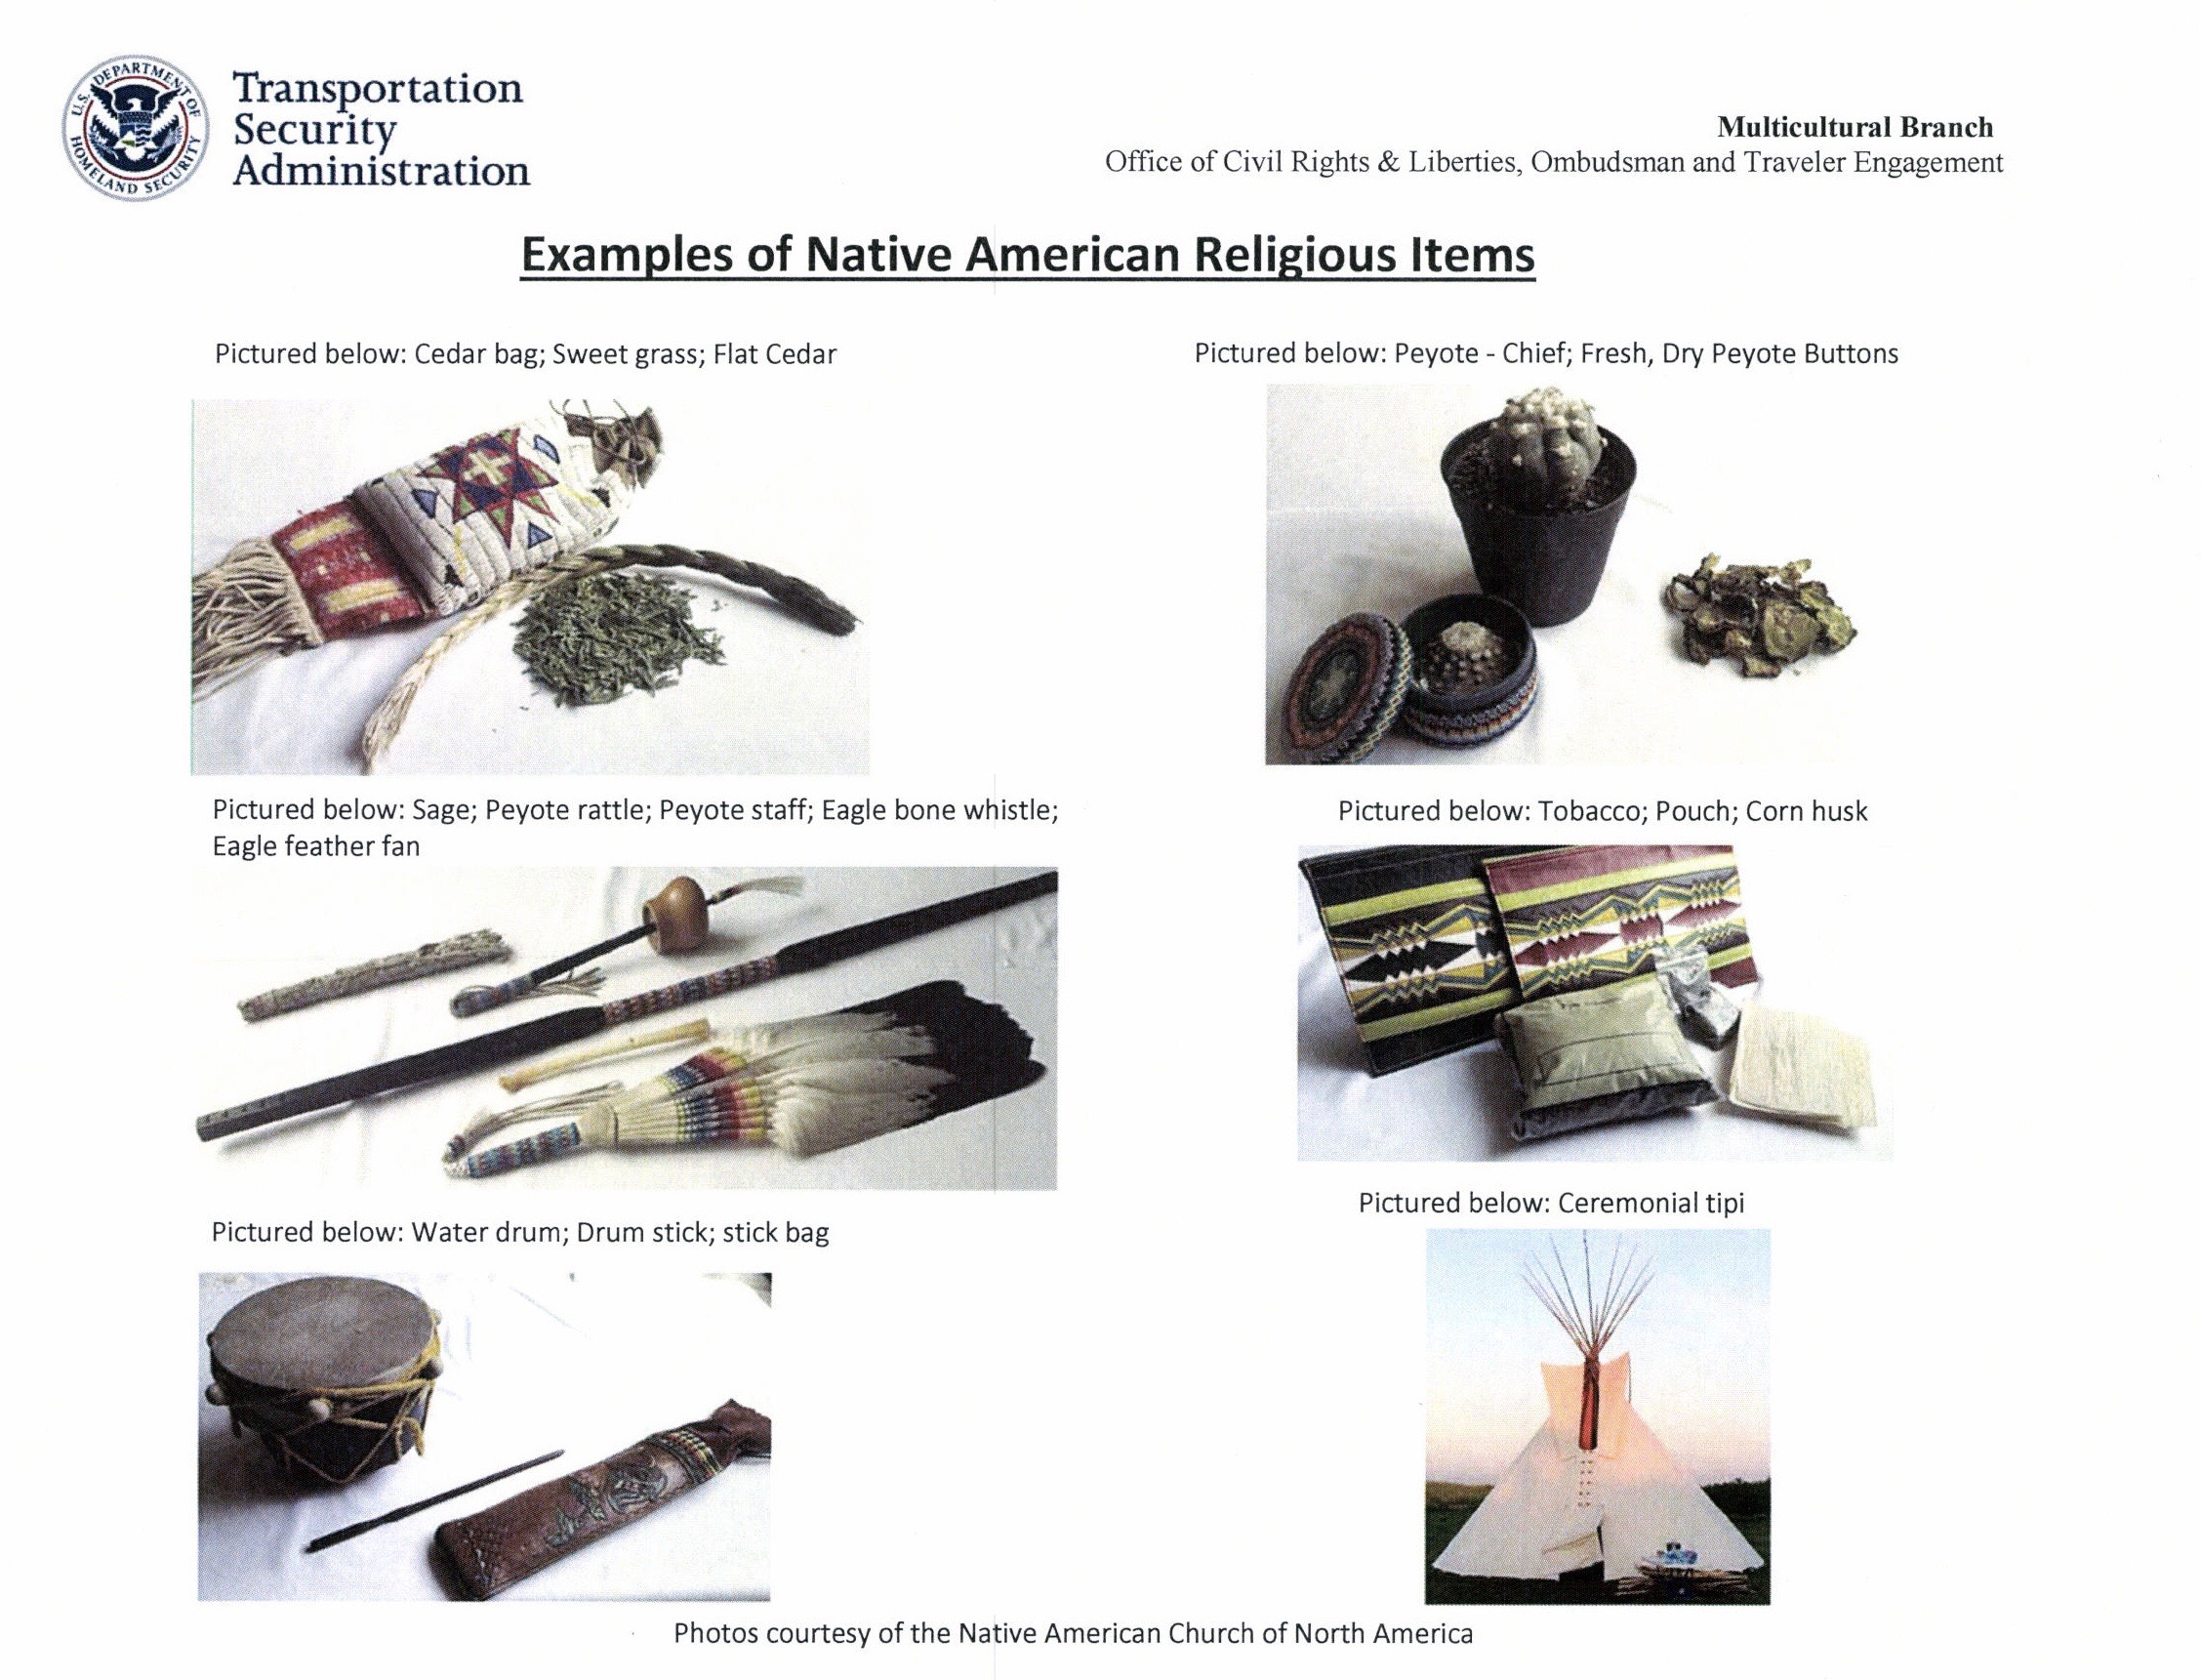 Settlement helps Native Americans who travel with sacred objects